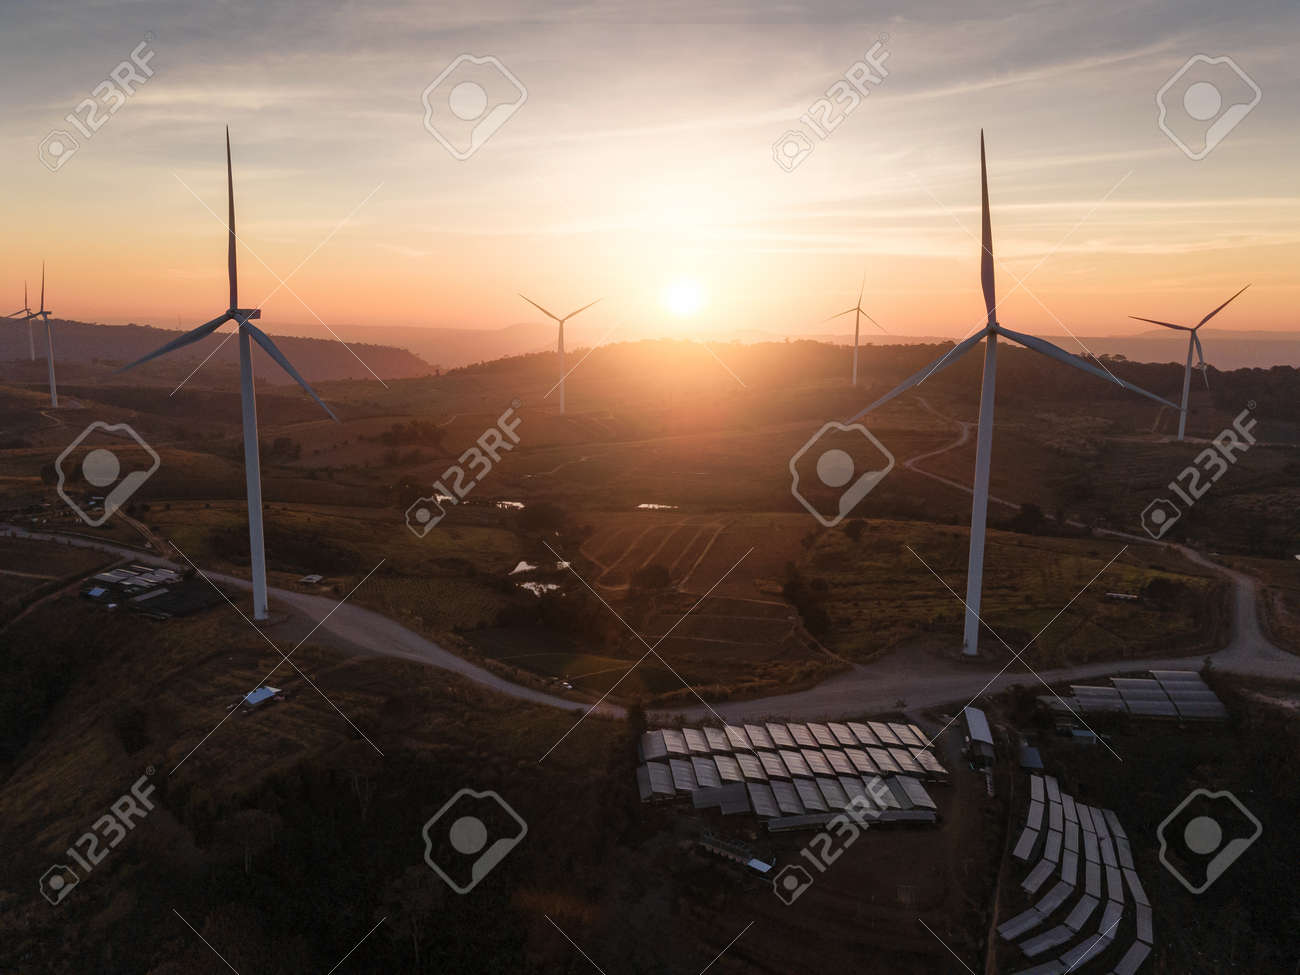 the wind turbines field and the sunrise. the concept of clean energy, environment, electricity and Industrial - 161907843